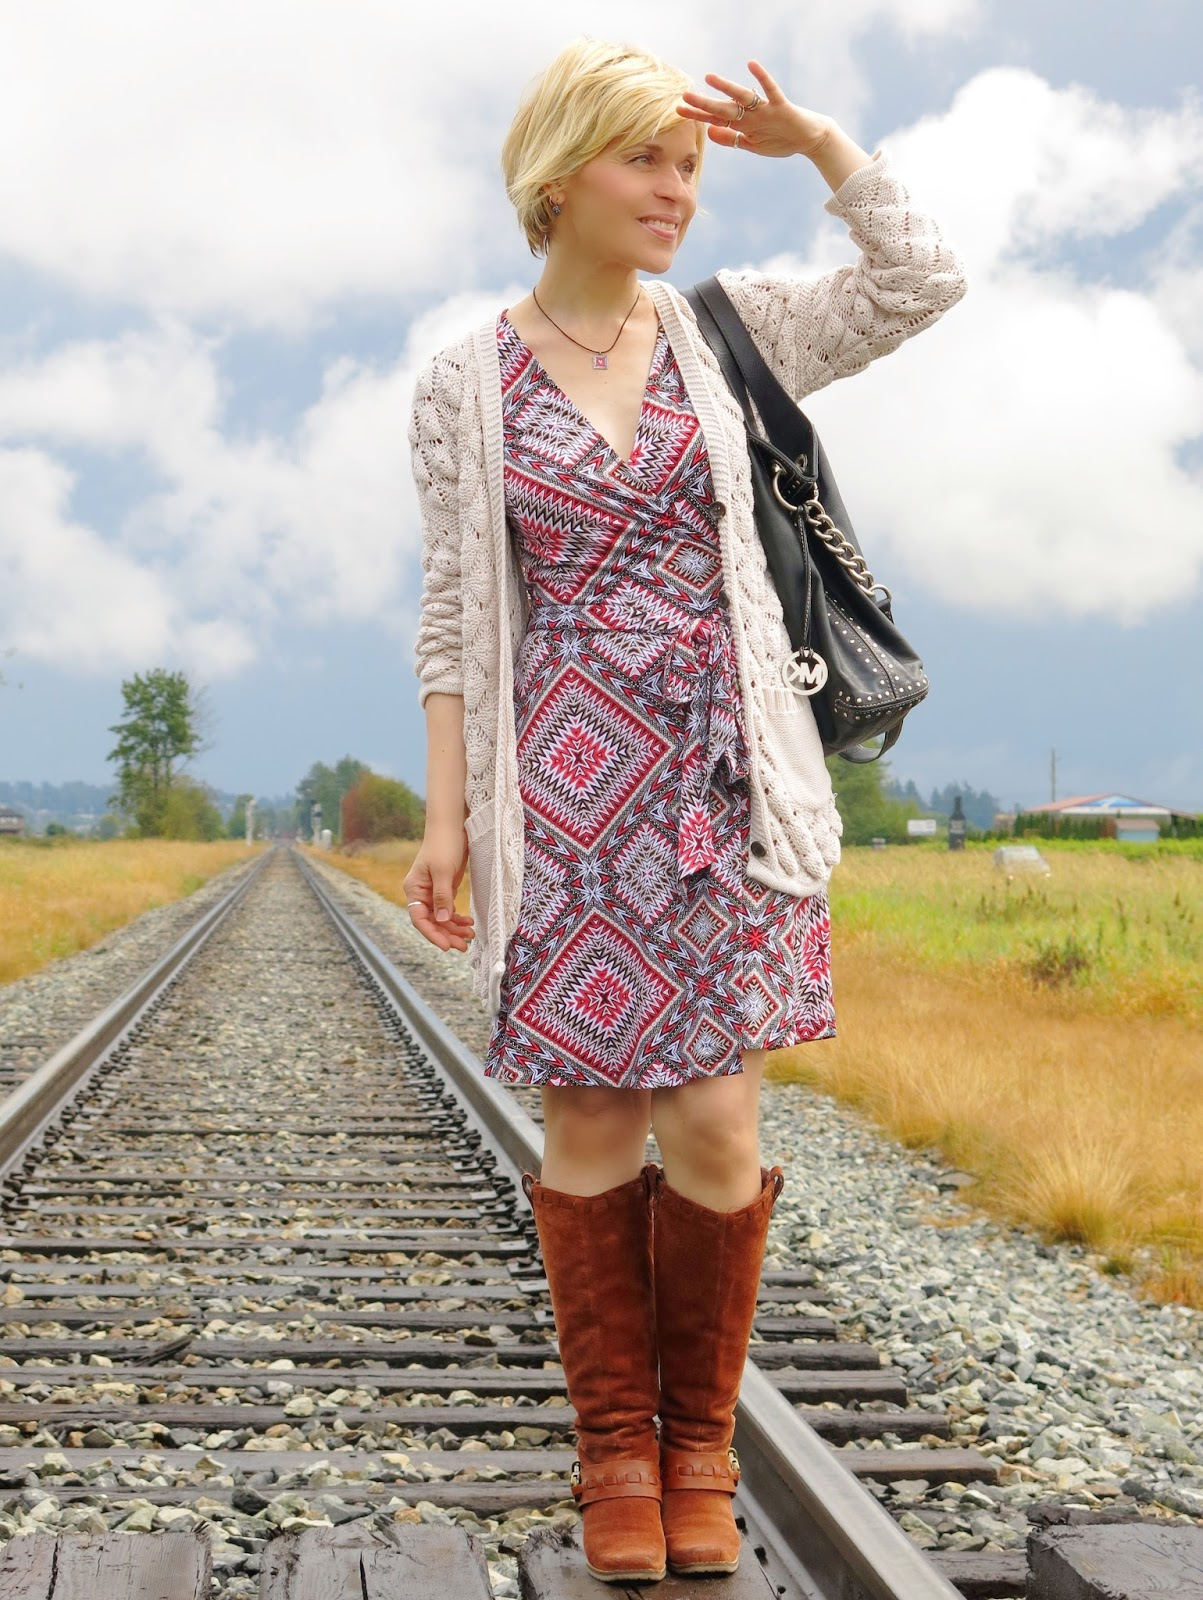 styling a red-patterned wrap dress with a grandpa cardigan and stack-heeled suede boots